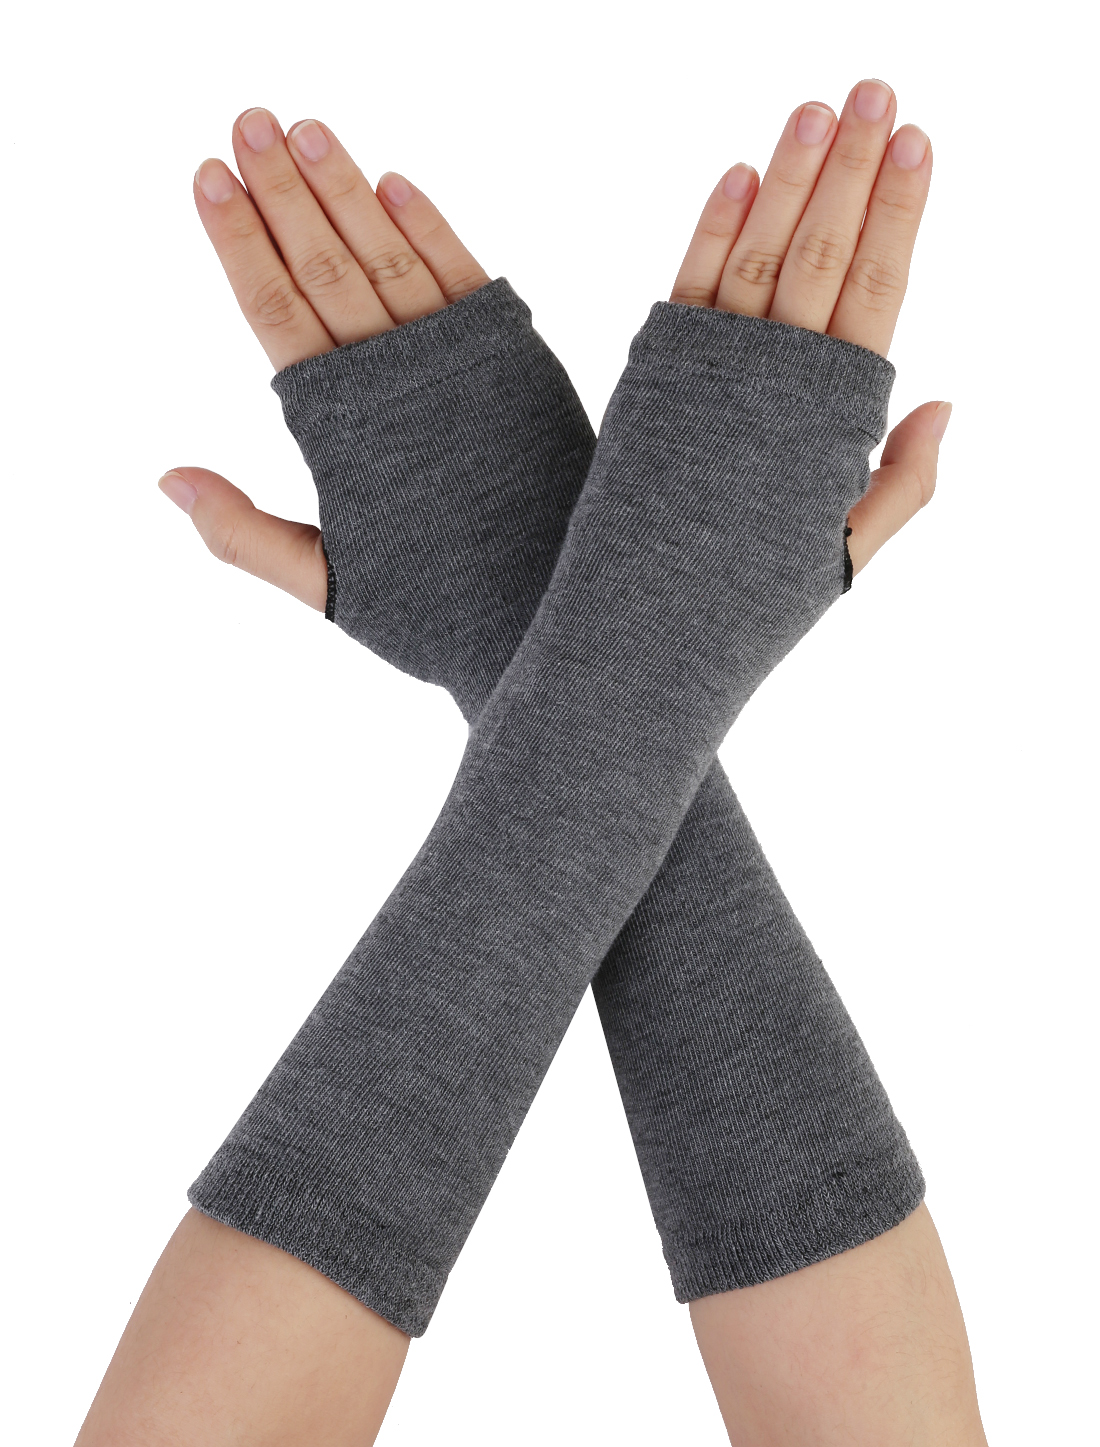 Gray Knitted Fingerless Long Gloves Arm Warmers for Lady